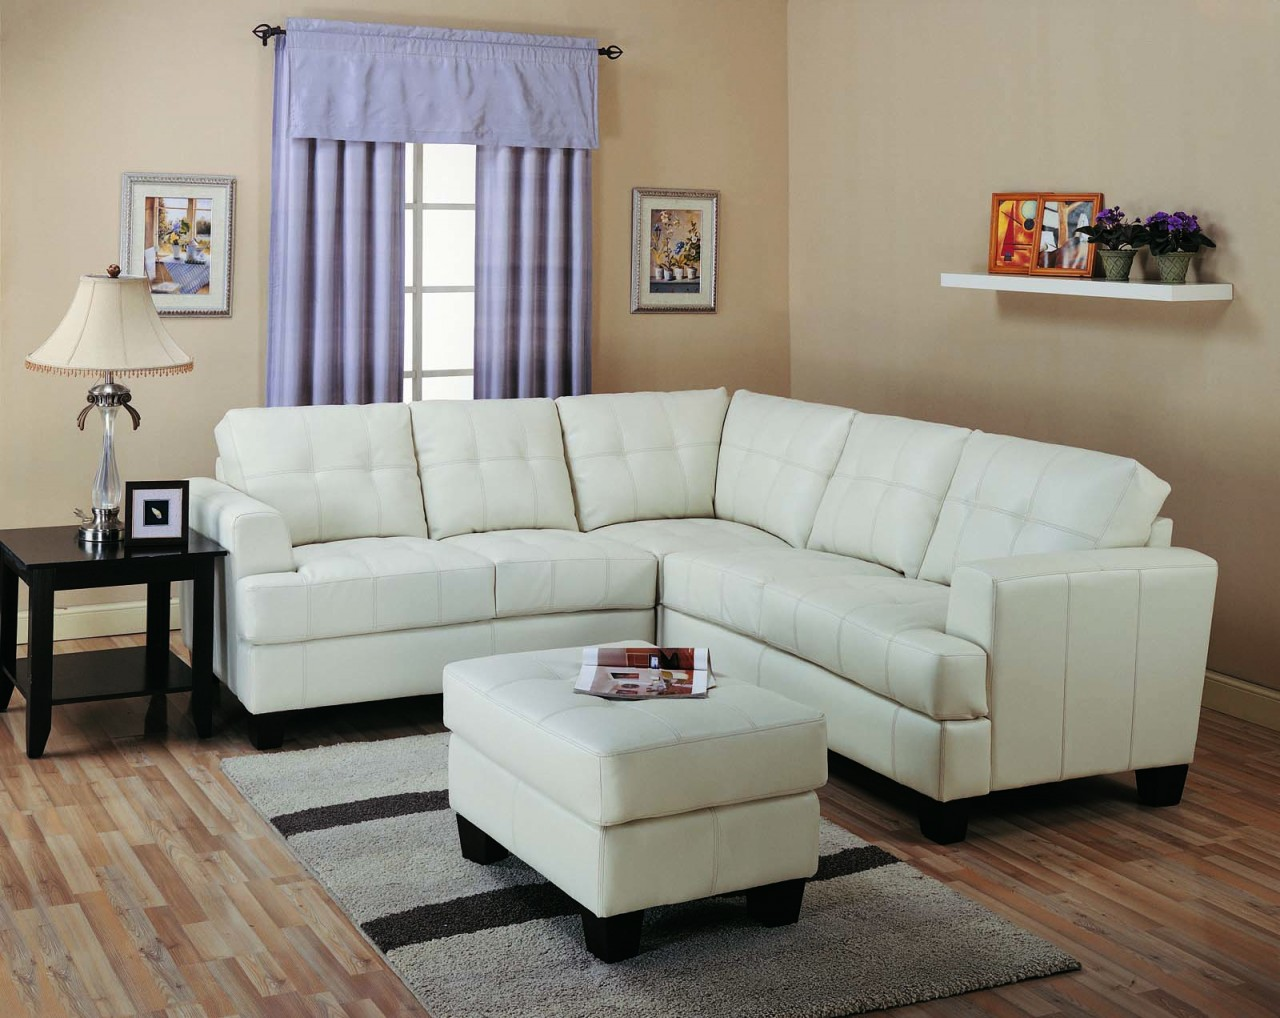 Types of best small sectional couches for small living for Living room sectionals